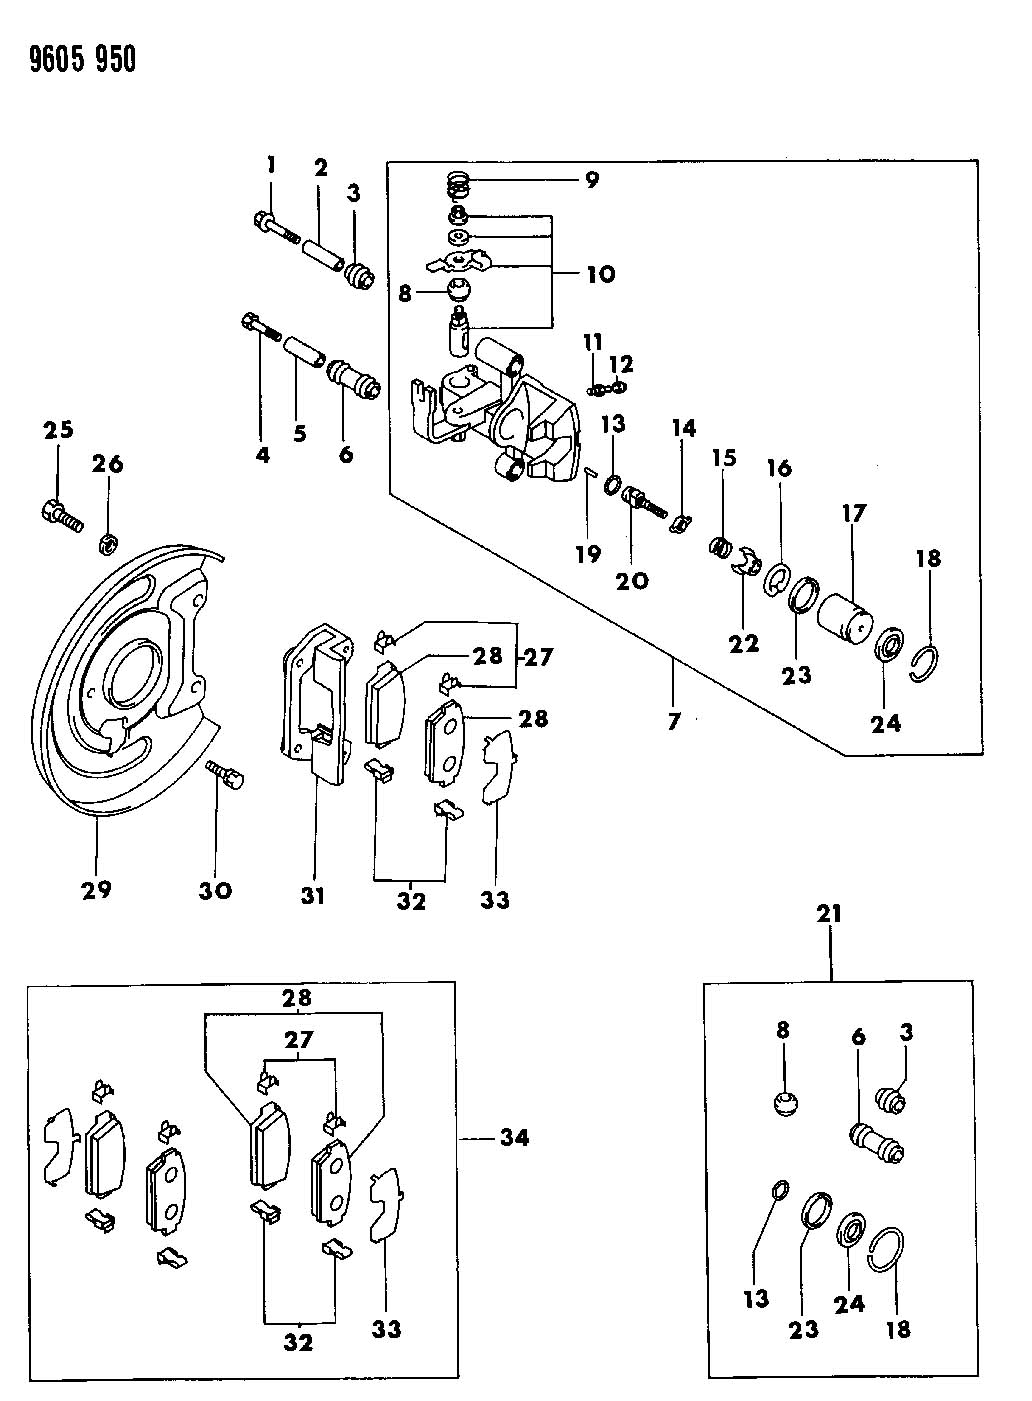 Mapa De Oceania Para Colorear likewise RepairGuideContent as well Need Good 4 9l 300 Engine Drawing 184698 besides 1992 Plymouth Laser How To Adjust Parking Brake in addition 2000 Camaro 3 8 Engine Diagram. on 1998 ford windstar specifications